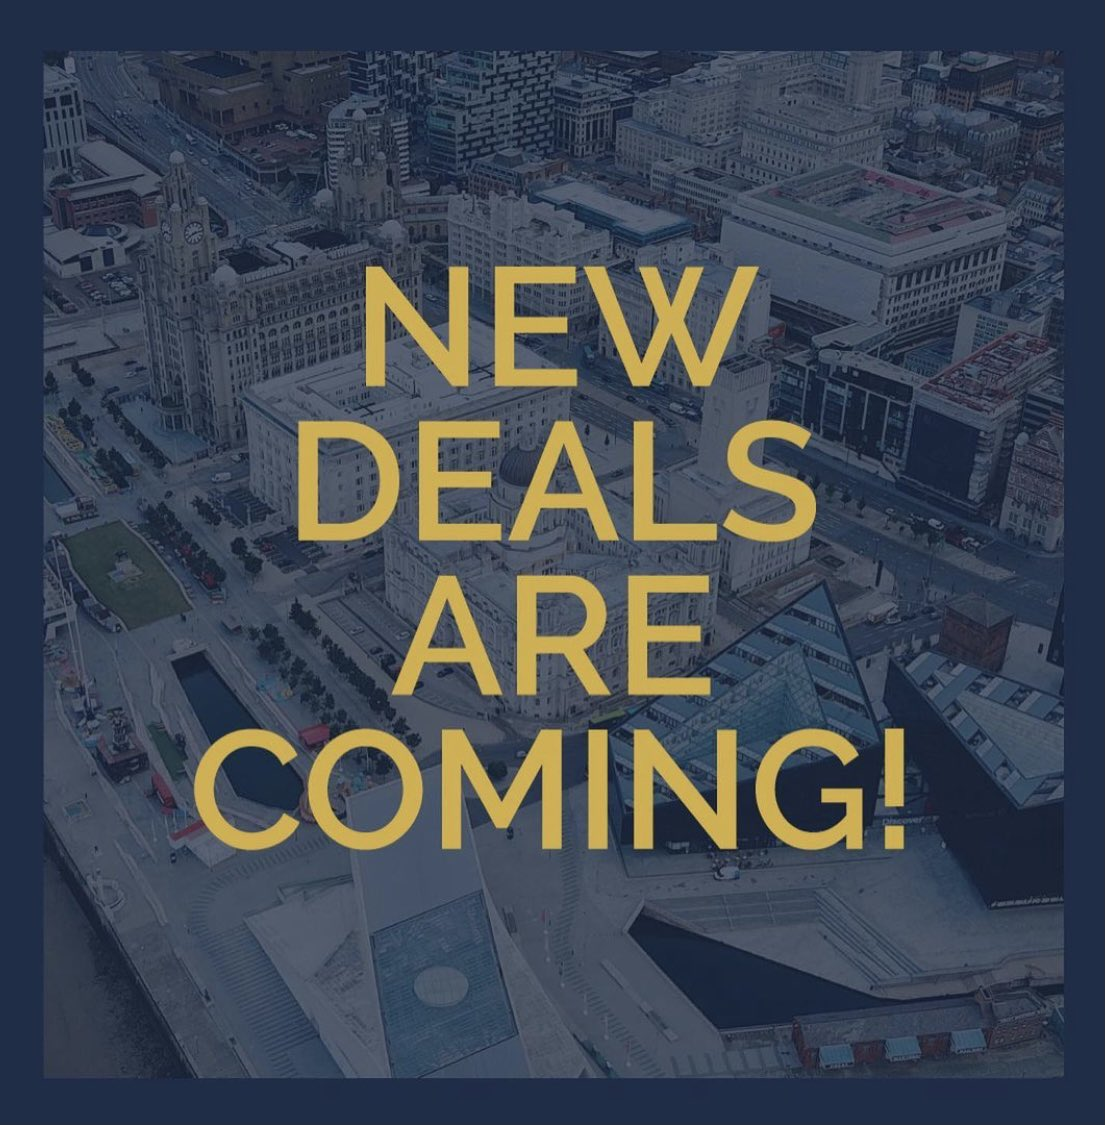 We're extremely pleased to announce that we have secured over 20 new off-market deals which be released over the next couple of weeks.   📩 DM us if you would like to join our mailing list. Don't miss out!  #TowerPropertyGroup #Liverpool #Investor #PropertyInvestment